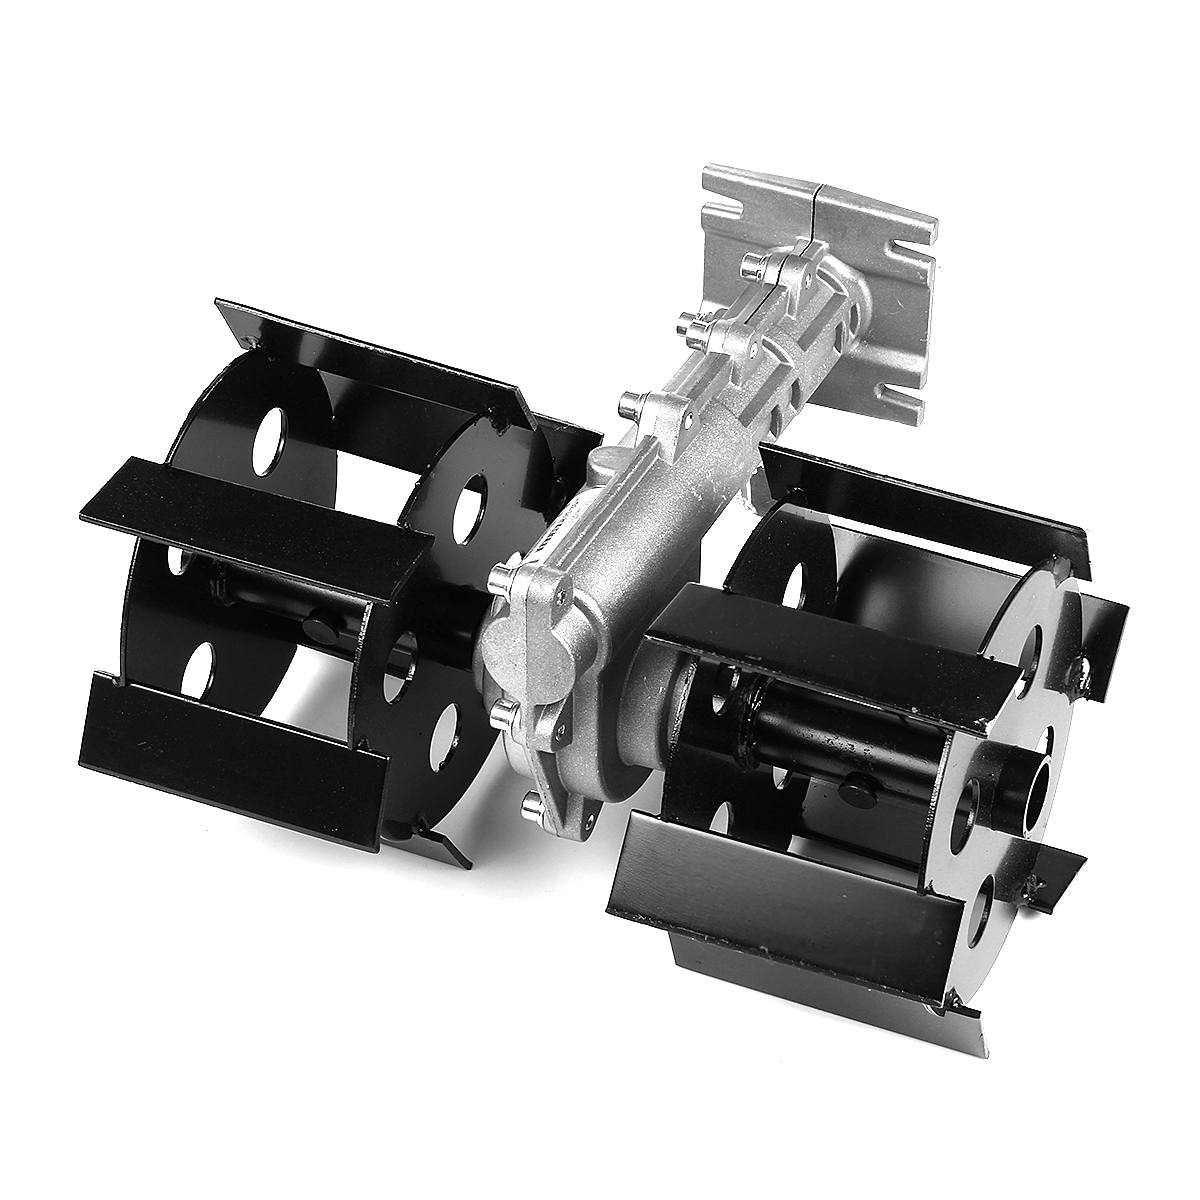 28mm 7/9 Tooth Lawn Mower Working Head Assembly Weeding Wheel Brush Cutter Weeder Cultivator Accessories For Orchard